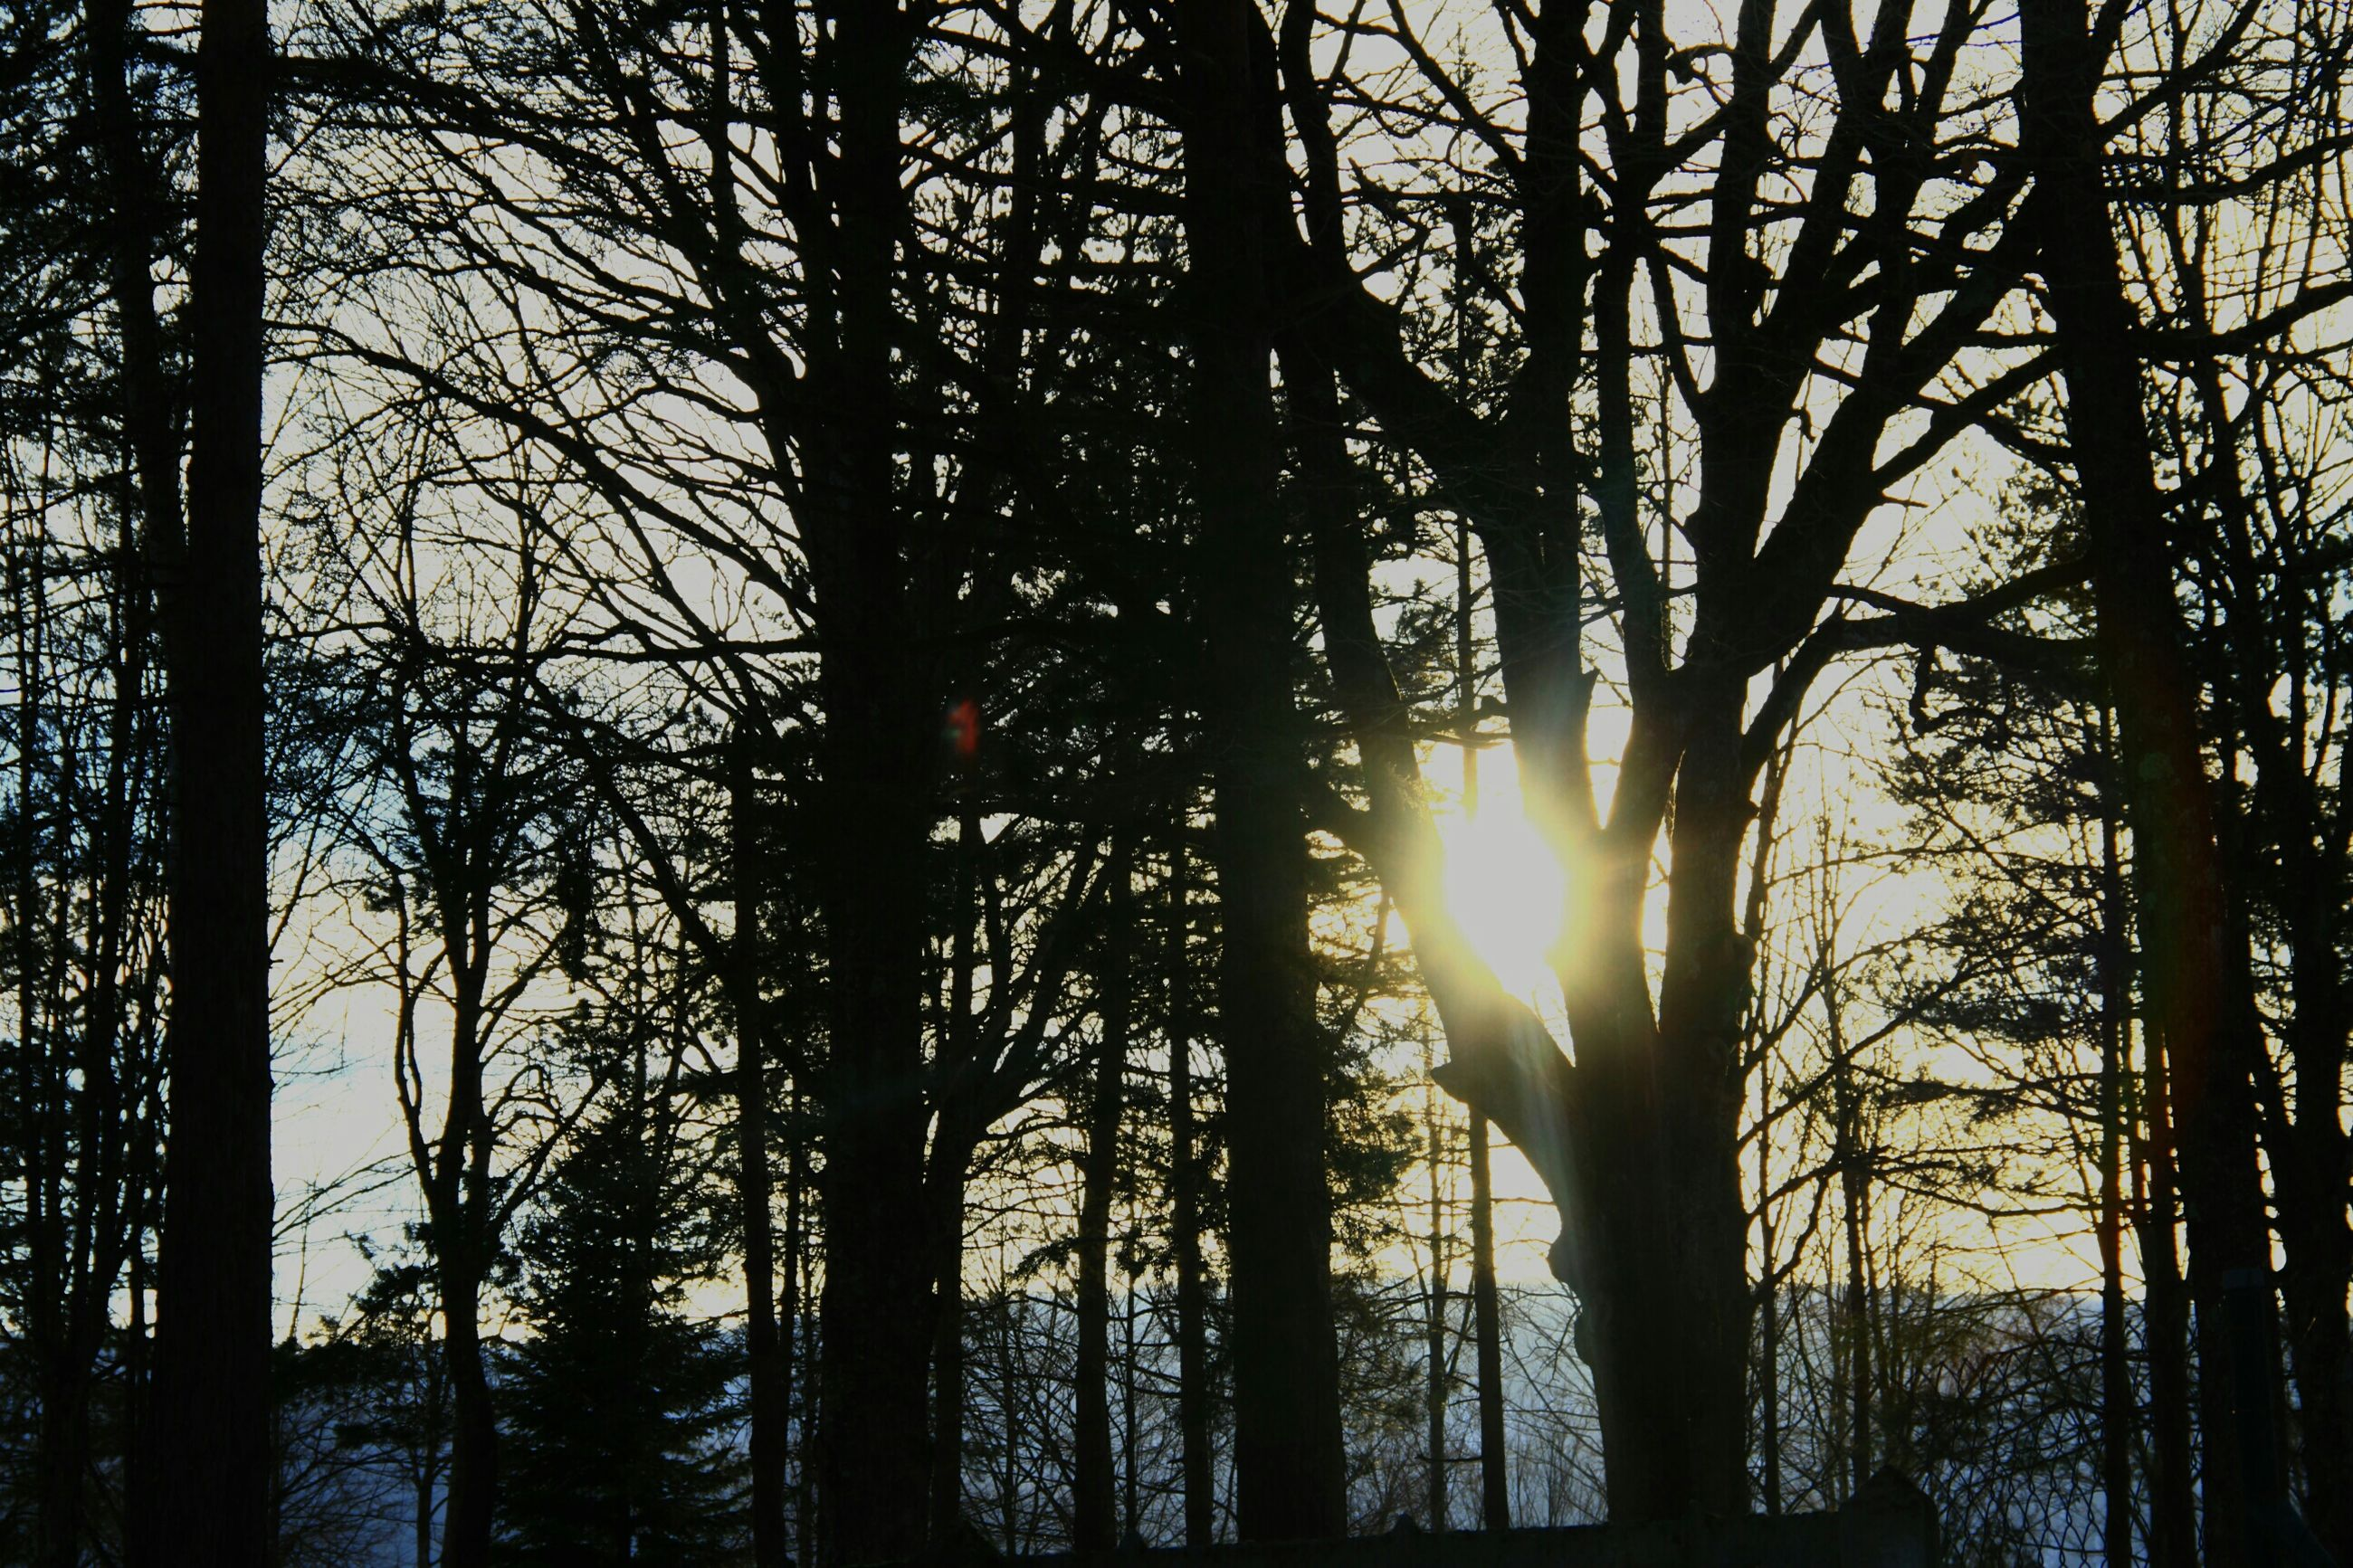 sun, tree, sunset, silhouette, bare tree, tranquility, tranquil scene, beauty in nature, branch, tree trunk, scenics, nature, sunlight, sunbeam, lens flare, sky, back lit, growth, forest, idyllic